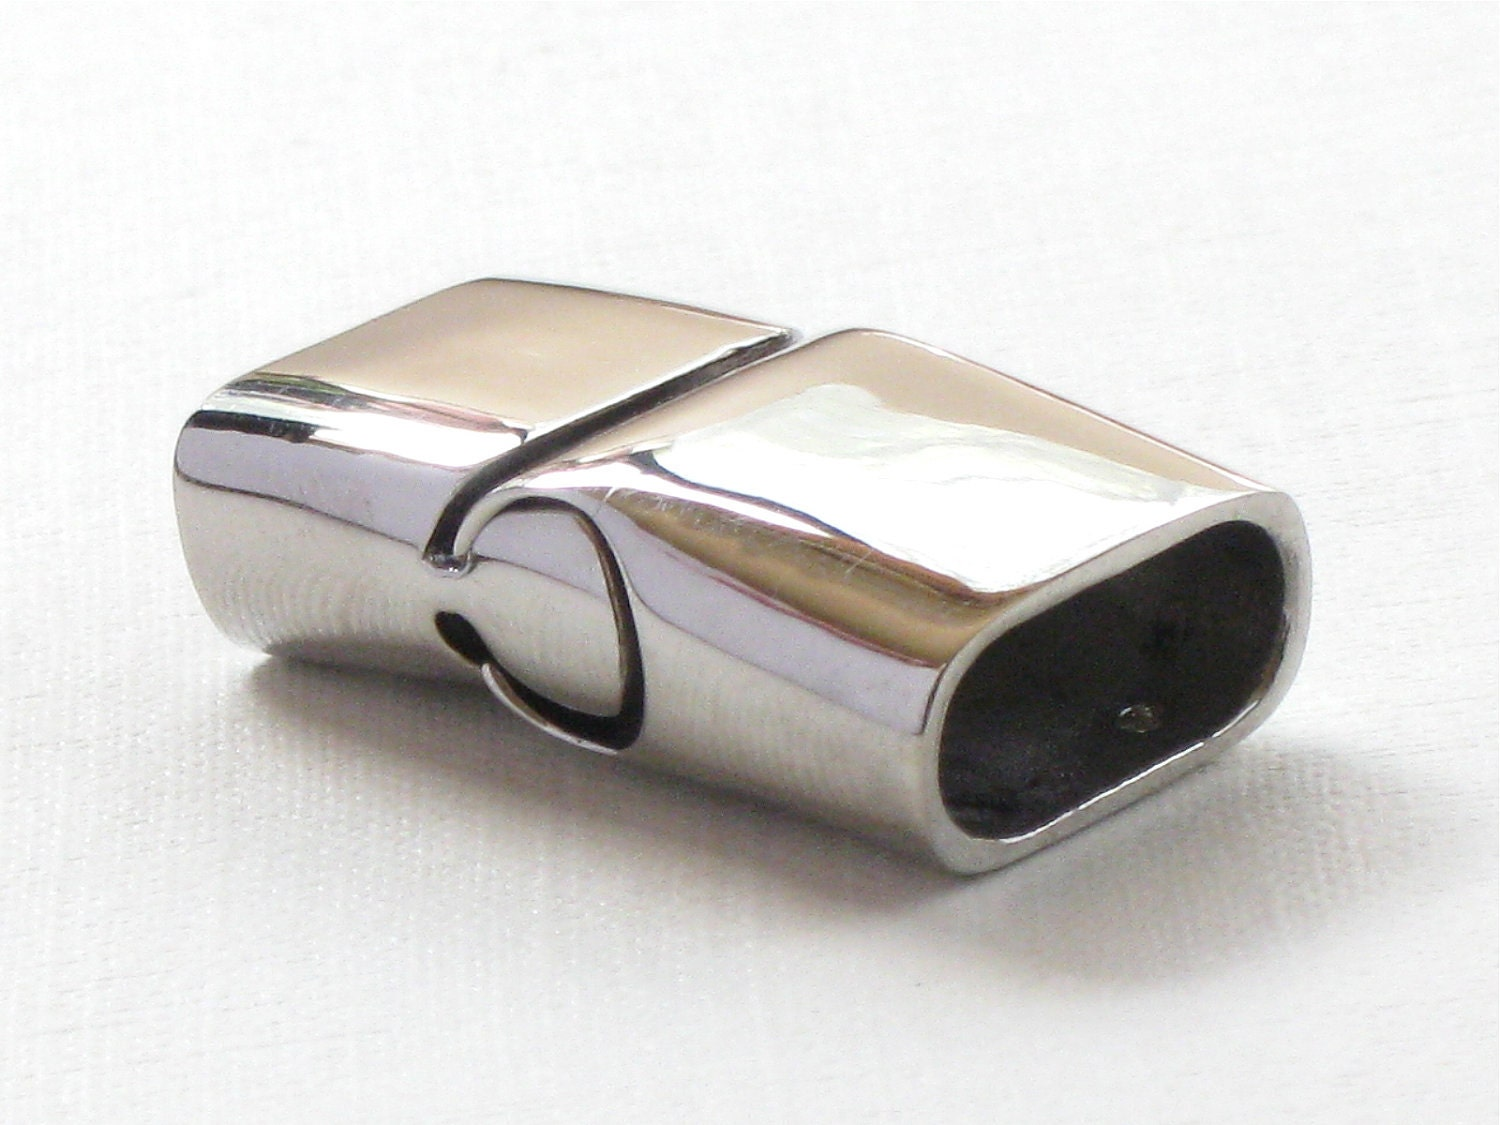 Stainless steel clasp end cap for leather jewelry slide